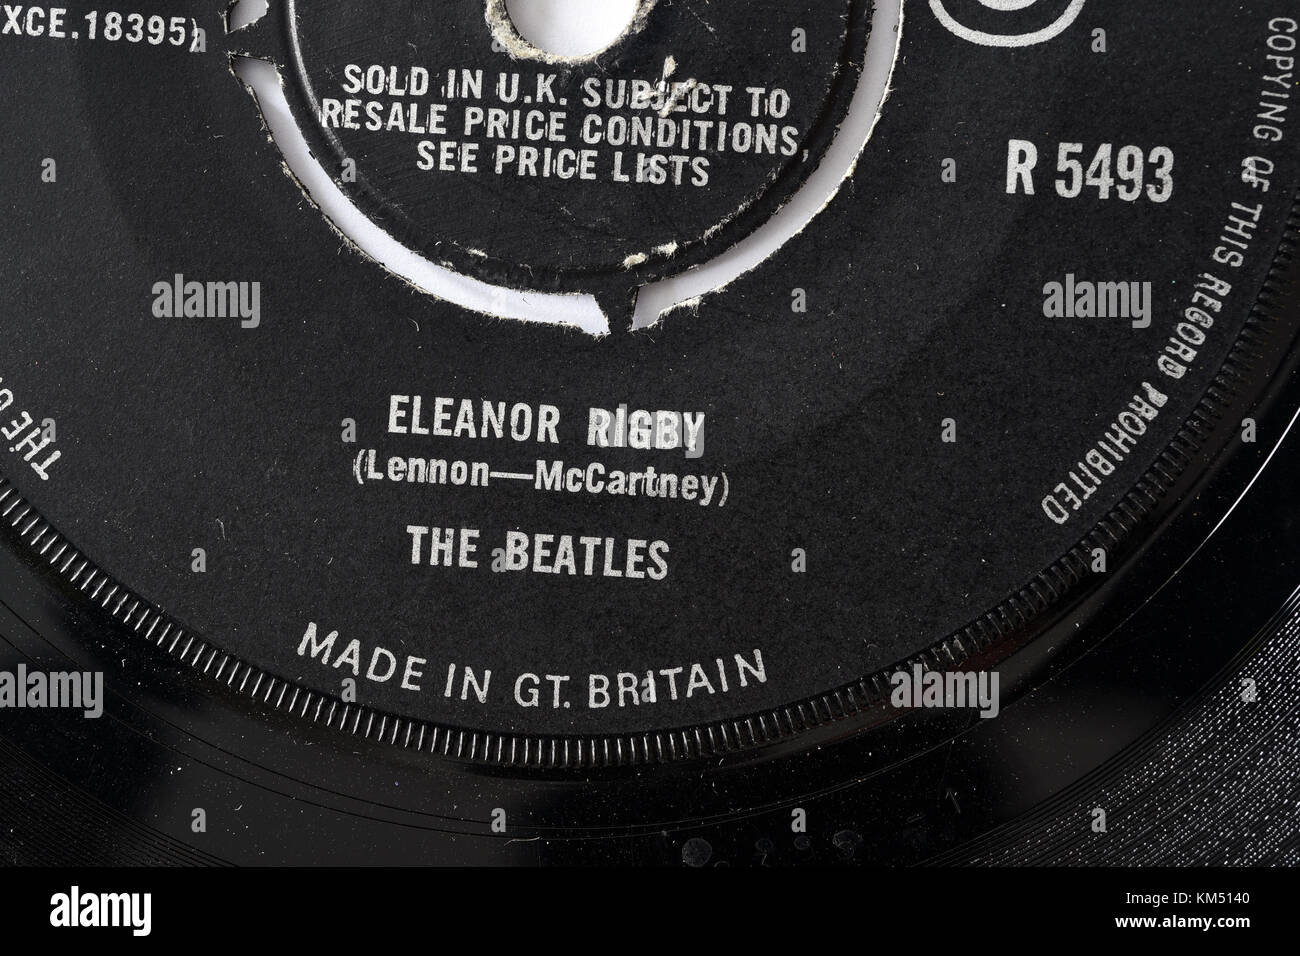 singles in rigby Yellow submarine / eleanor rigby, a single by the beatles released 5 august 1966 on (catalog no r 5493 vinyl 7) genres: psychedelic pop rated #56 in the best singles of 1966, and #1564 in the greatest all-time single chart (according to rym users).